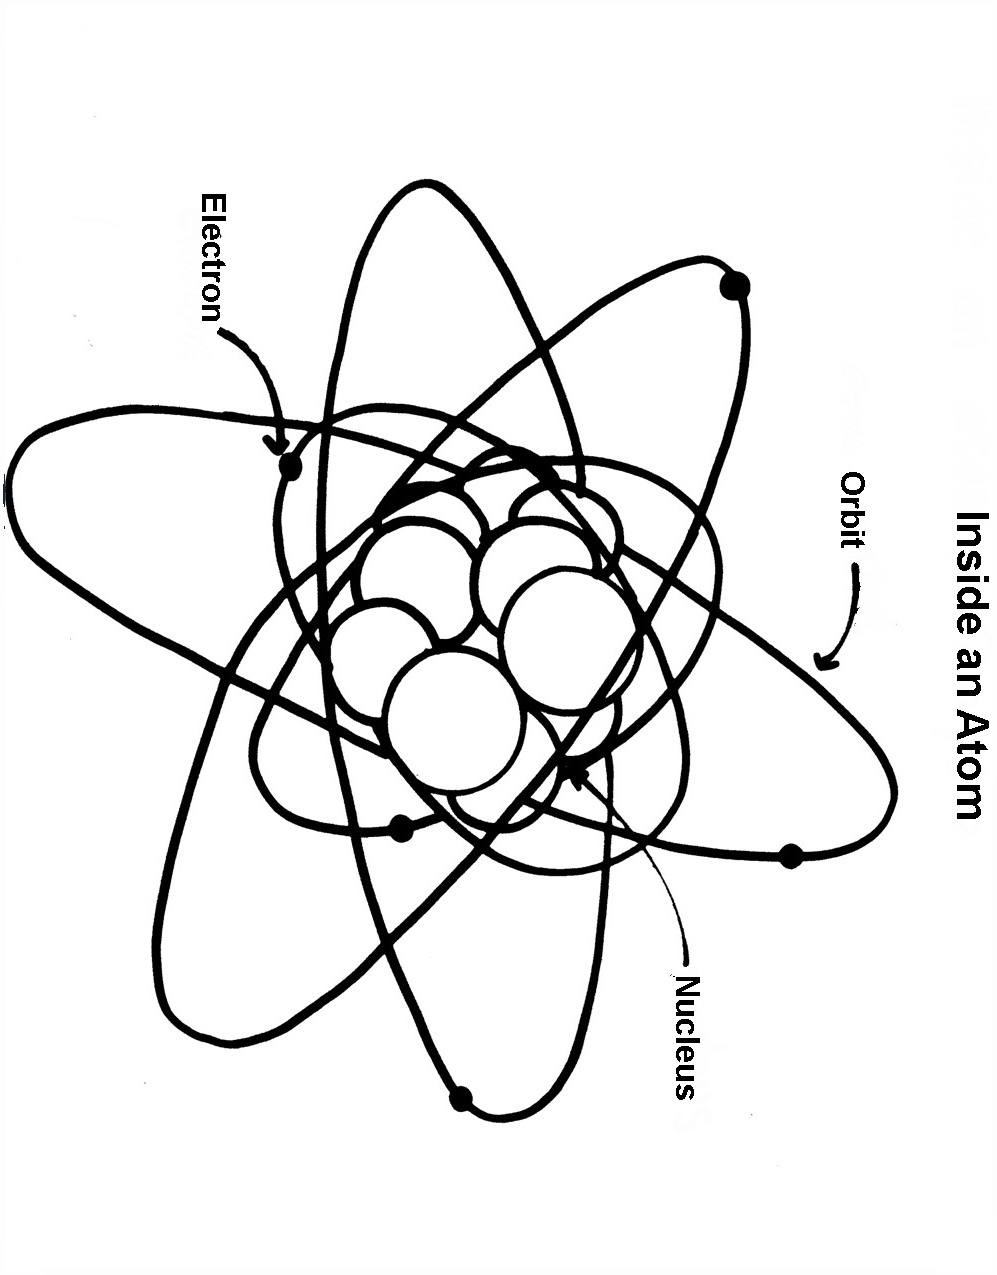 science coloring sheet science coloring pages science sheet coloring